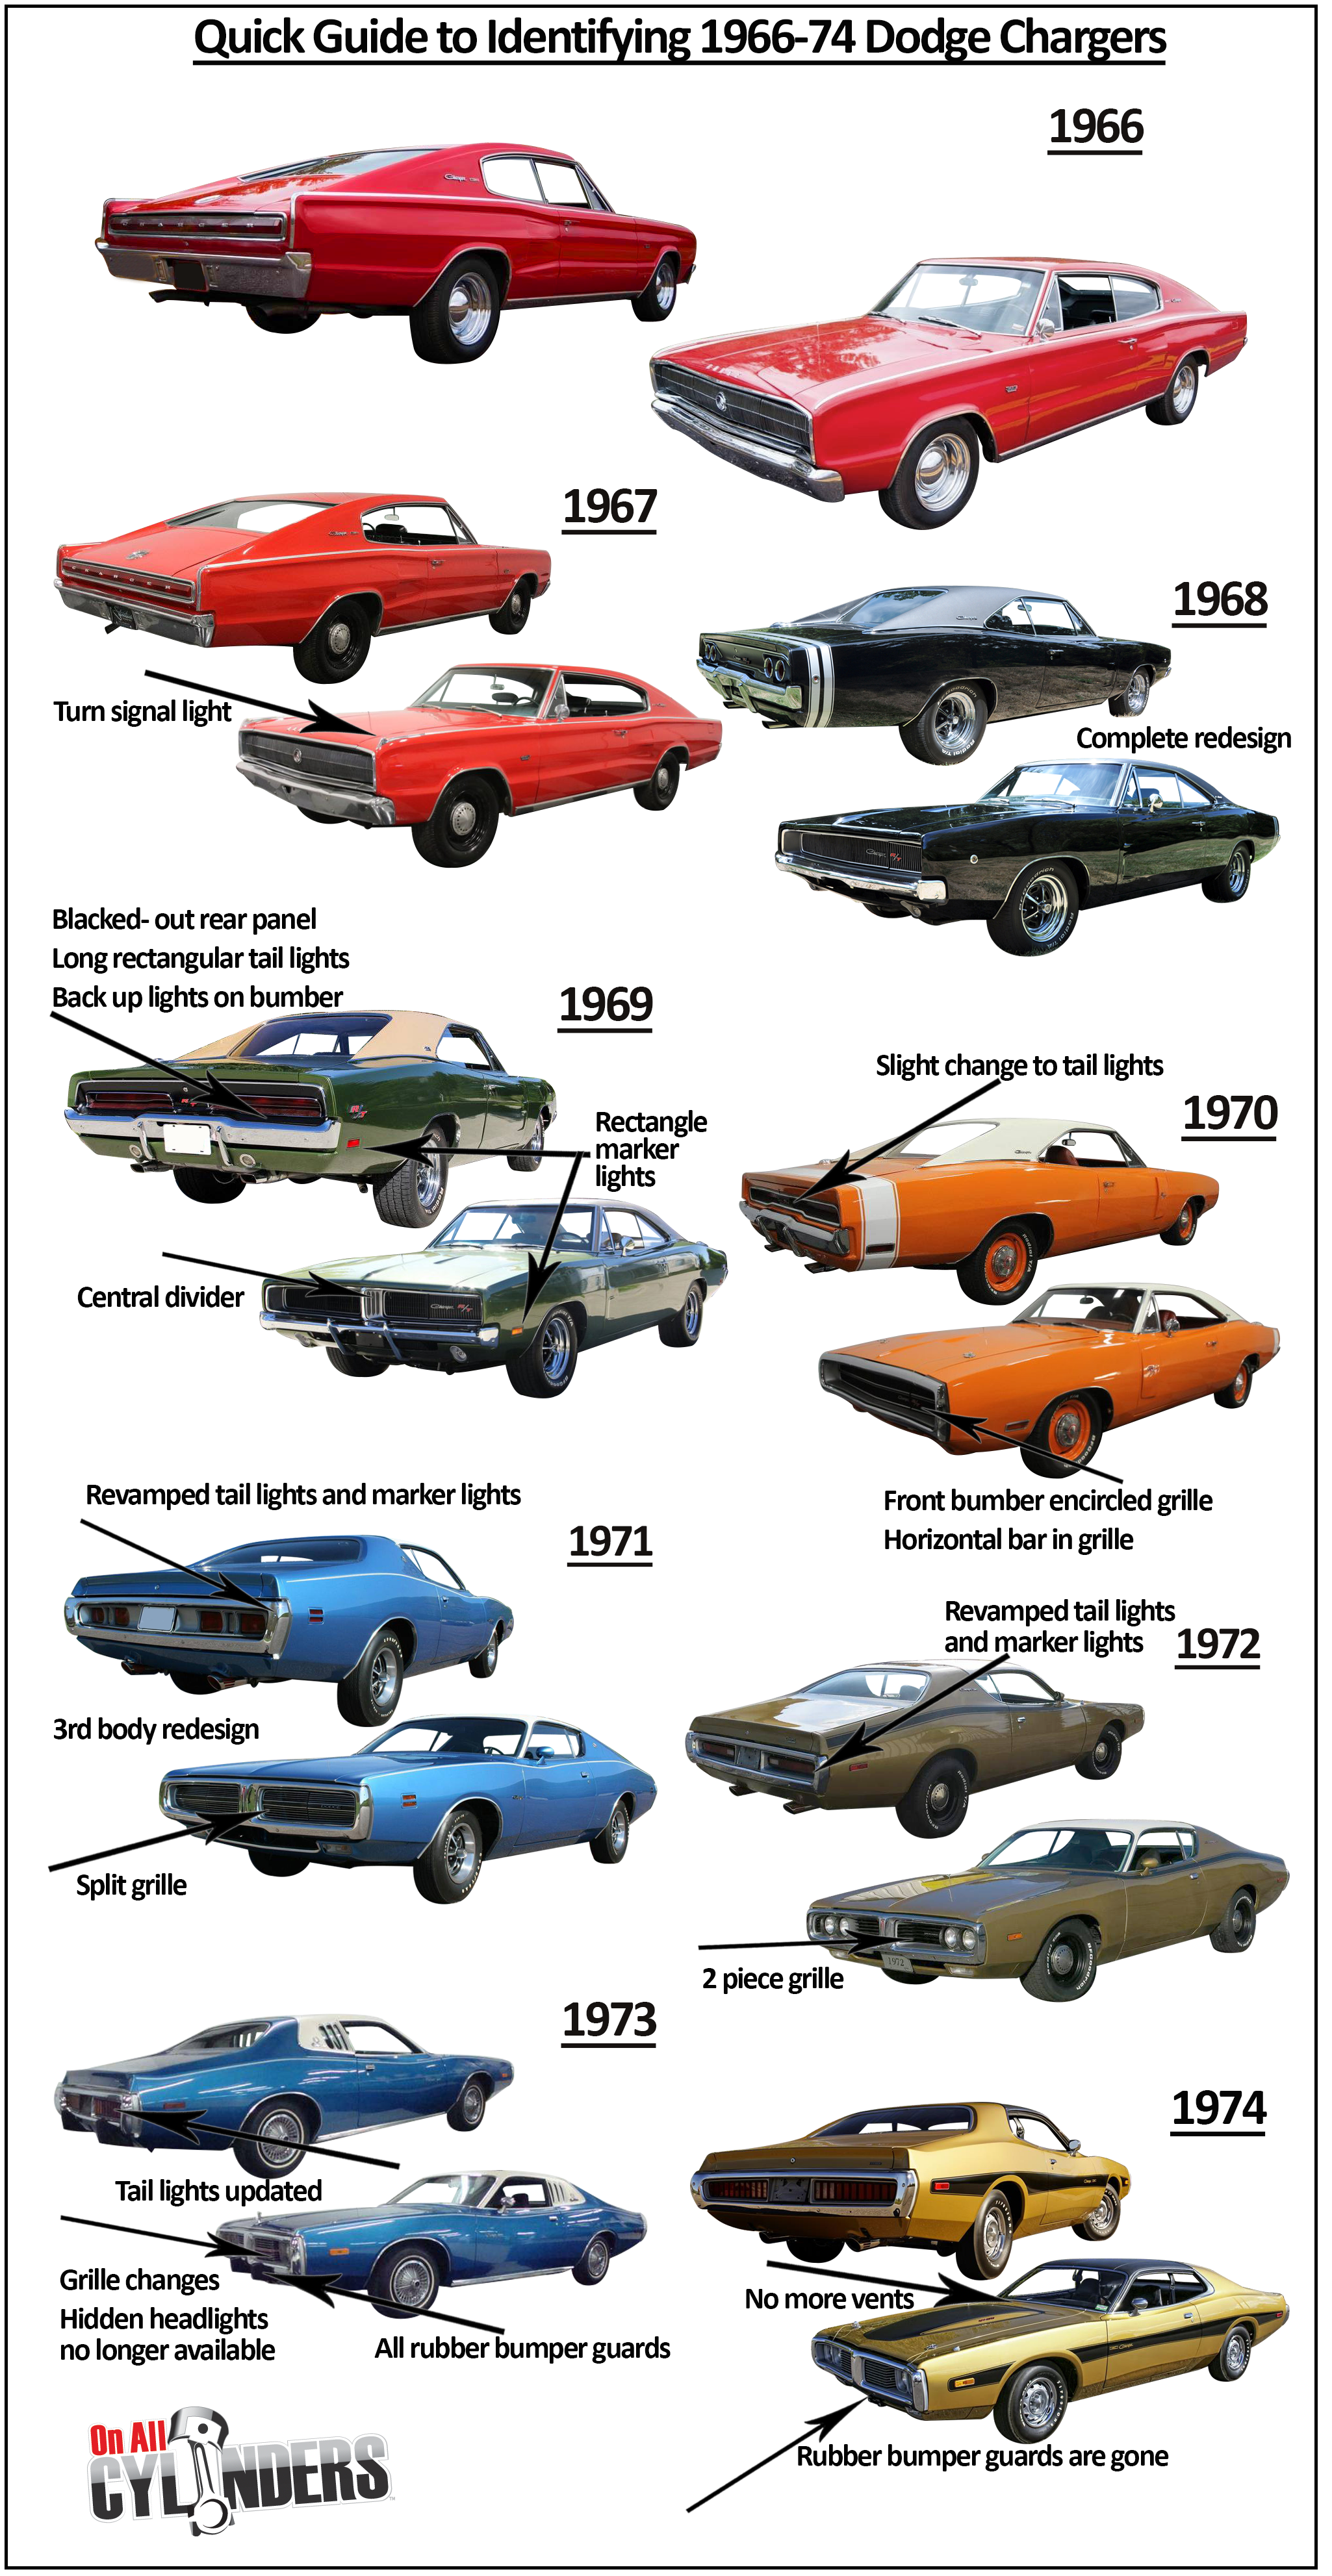 Accel Hei Distributor Wiring Diagram besides 19551957 Chevy Cars moreover Gm Hei Wiring Diagrams Cdi For Dummies likewise Pro  p Distributor Wiring Diagram For Chevy together with Harness Hei Distributor Cap Connector. on tach wiring diagram on proform hei distributor